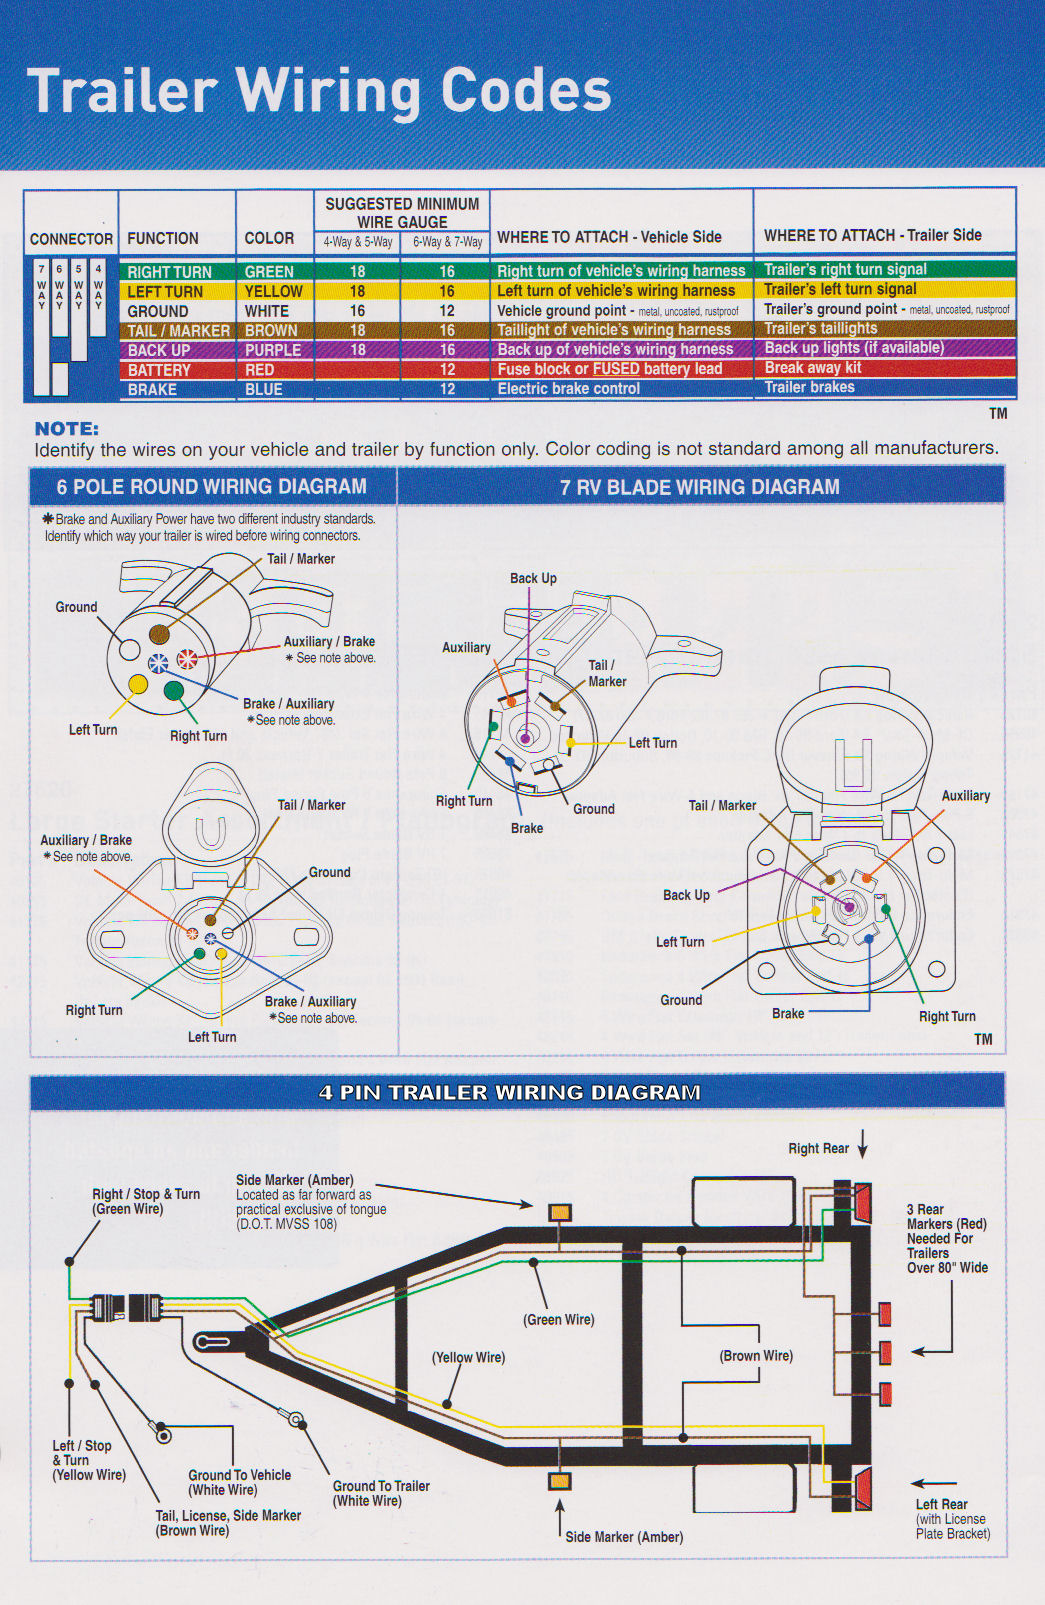 Trailer Wiring Diagram trailer wiring diagram we are the trailer pros! ez dumper trailer wiring diagram at gsmportal.co